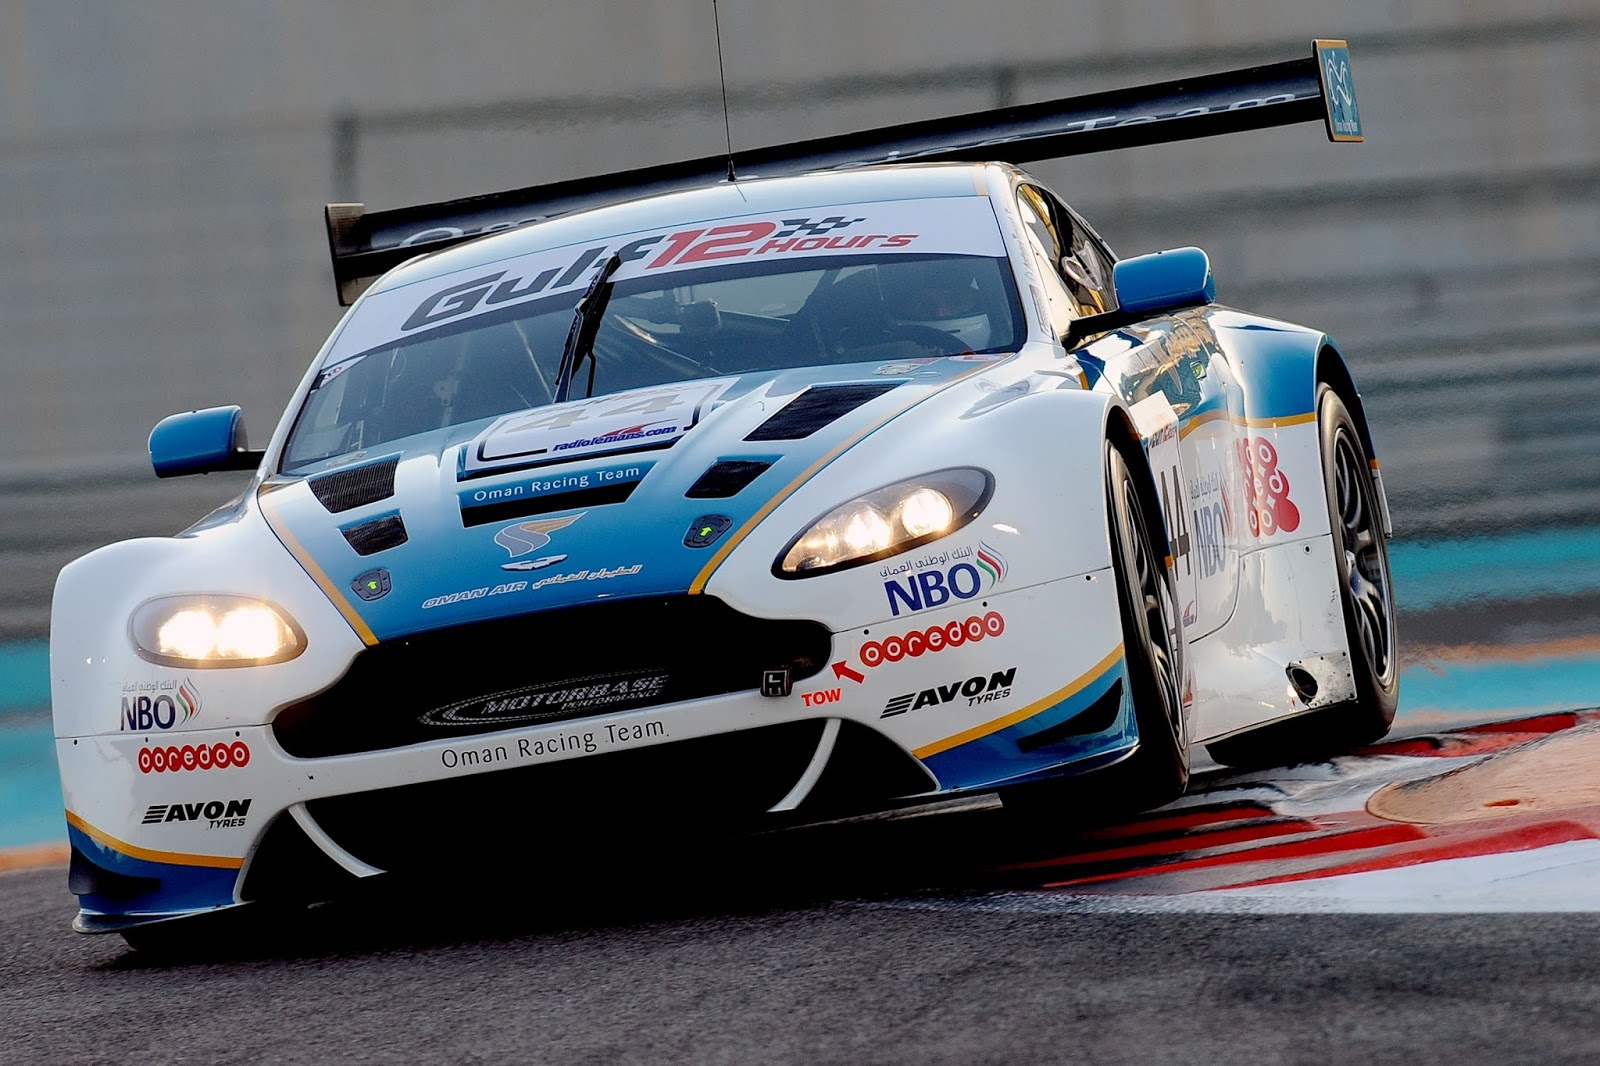 With less than 170 days left until the start of the 2016 gulf 12 hours at the yas marina circuit in abu dhabi four aston martin entries have so far